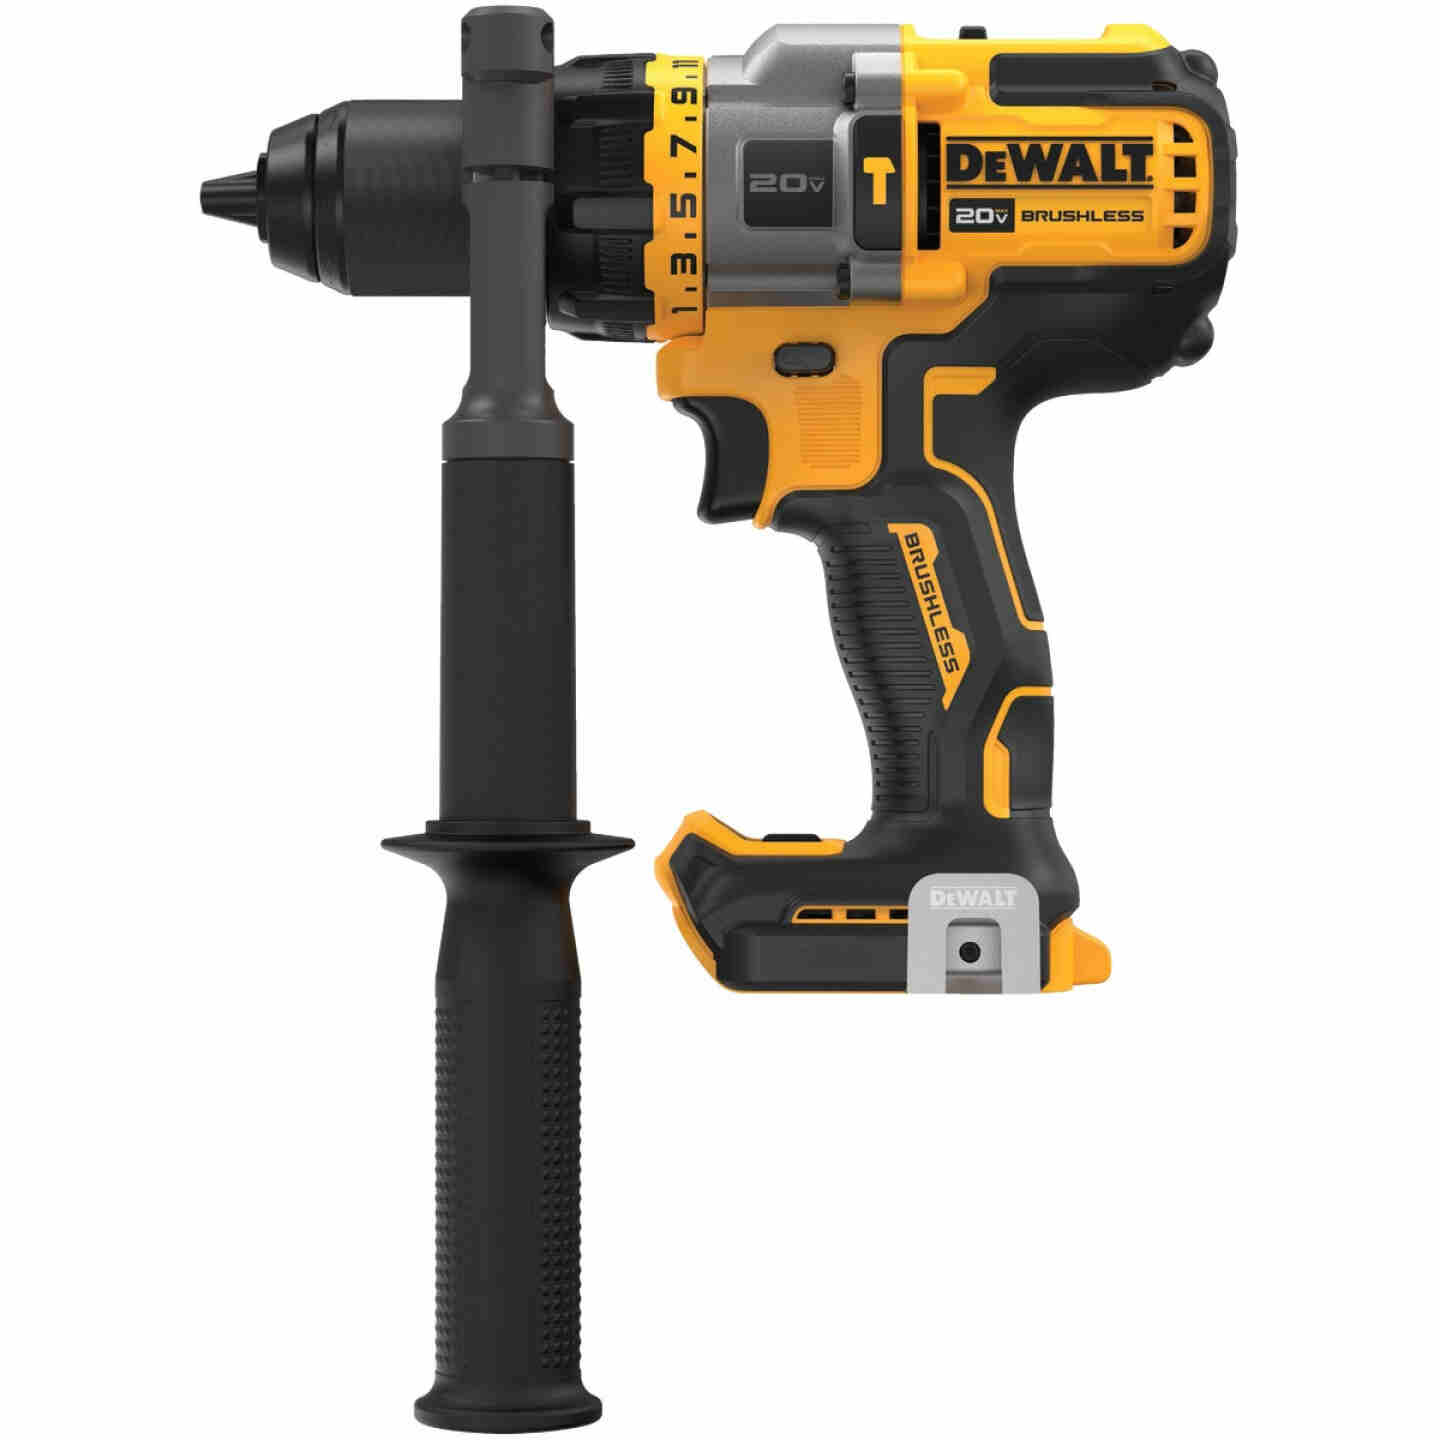 DeWalt 20 Volt MAX Lithium-Ion Brushless 1/2 In. Cordless Hammer Drill with Flexvolt Advantage (Bare Tool) Image 2